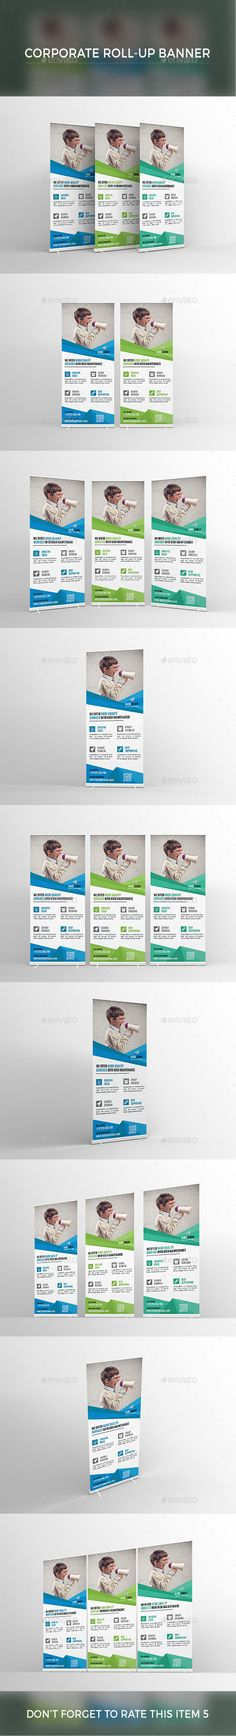 Travel Agency Roll-Up Banner | Download, Template and Ais